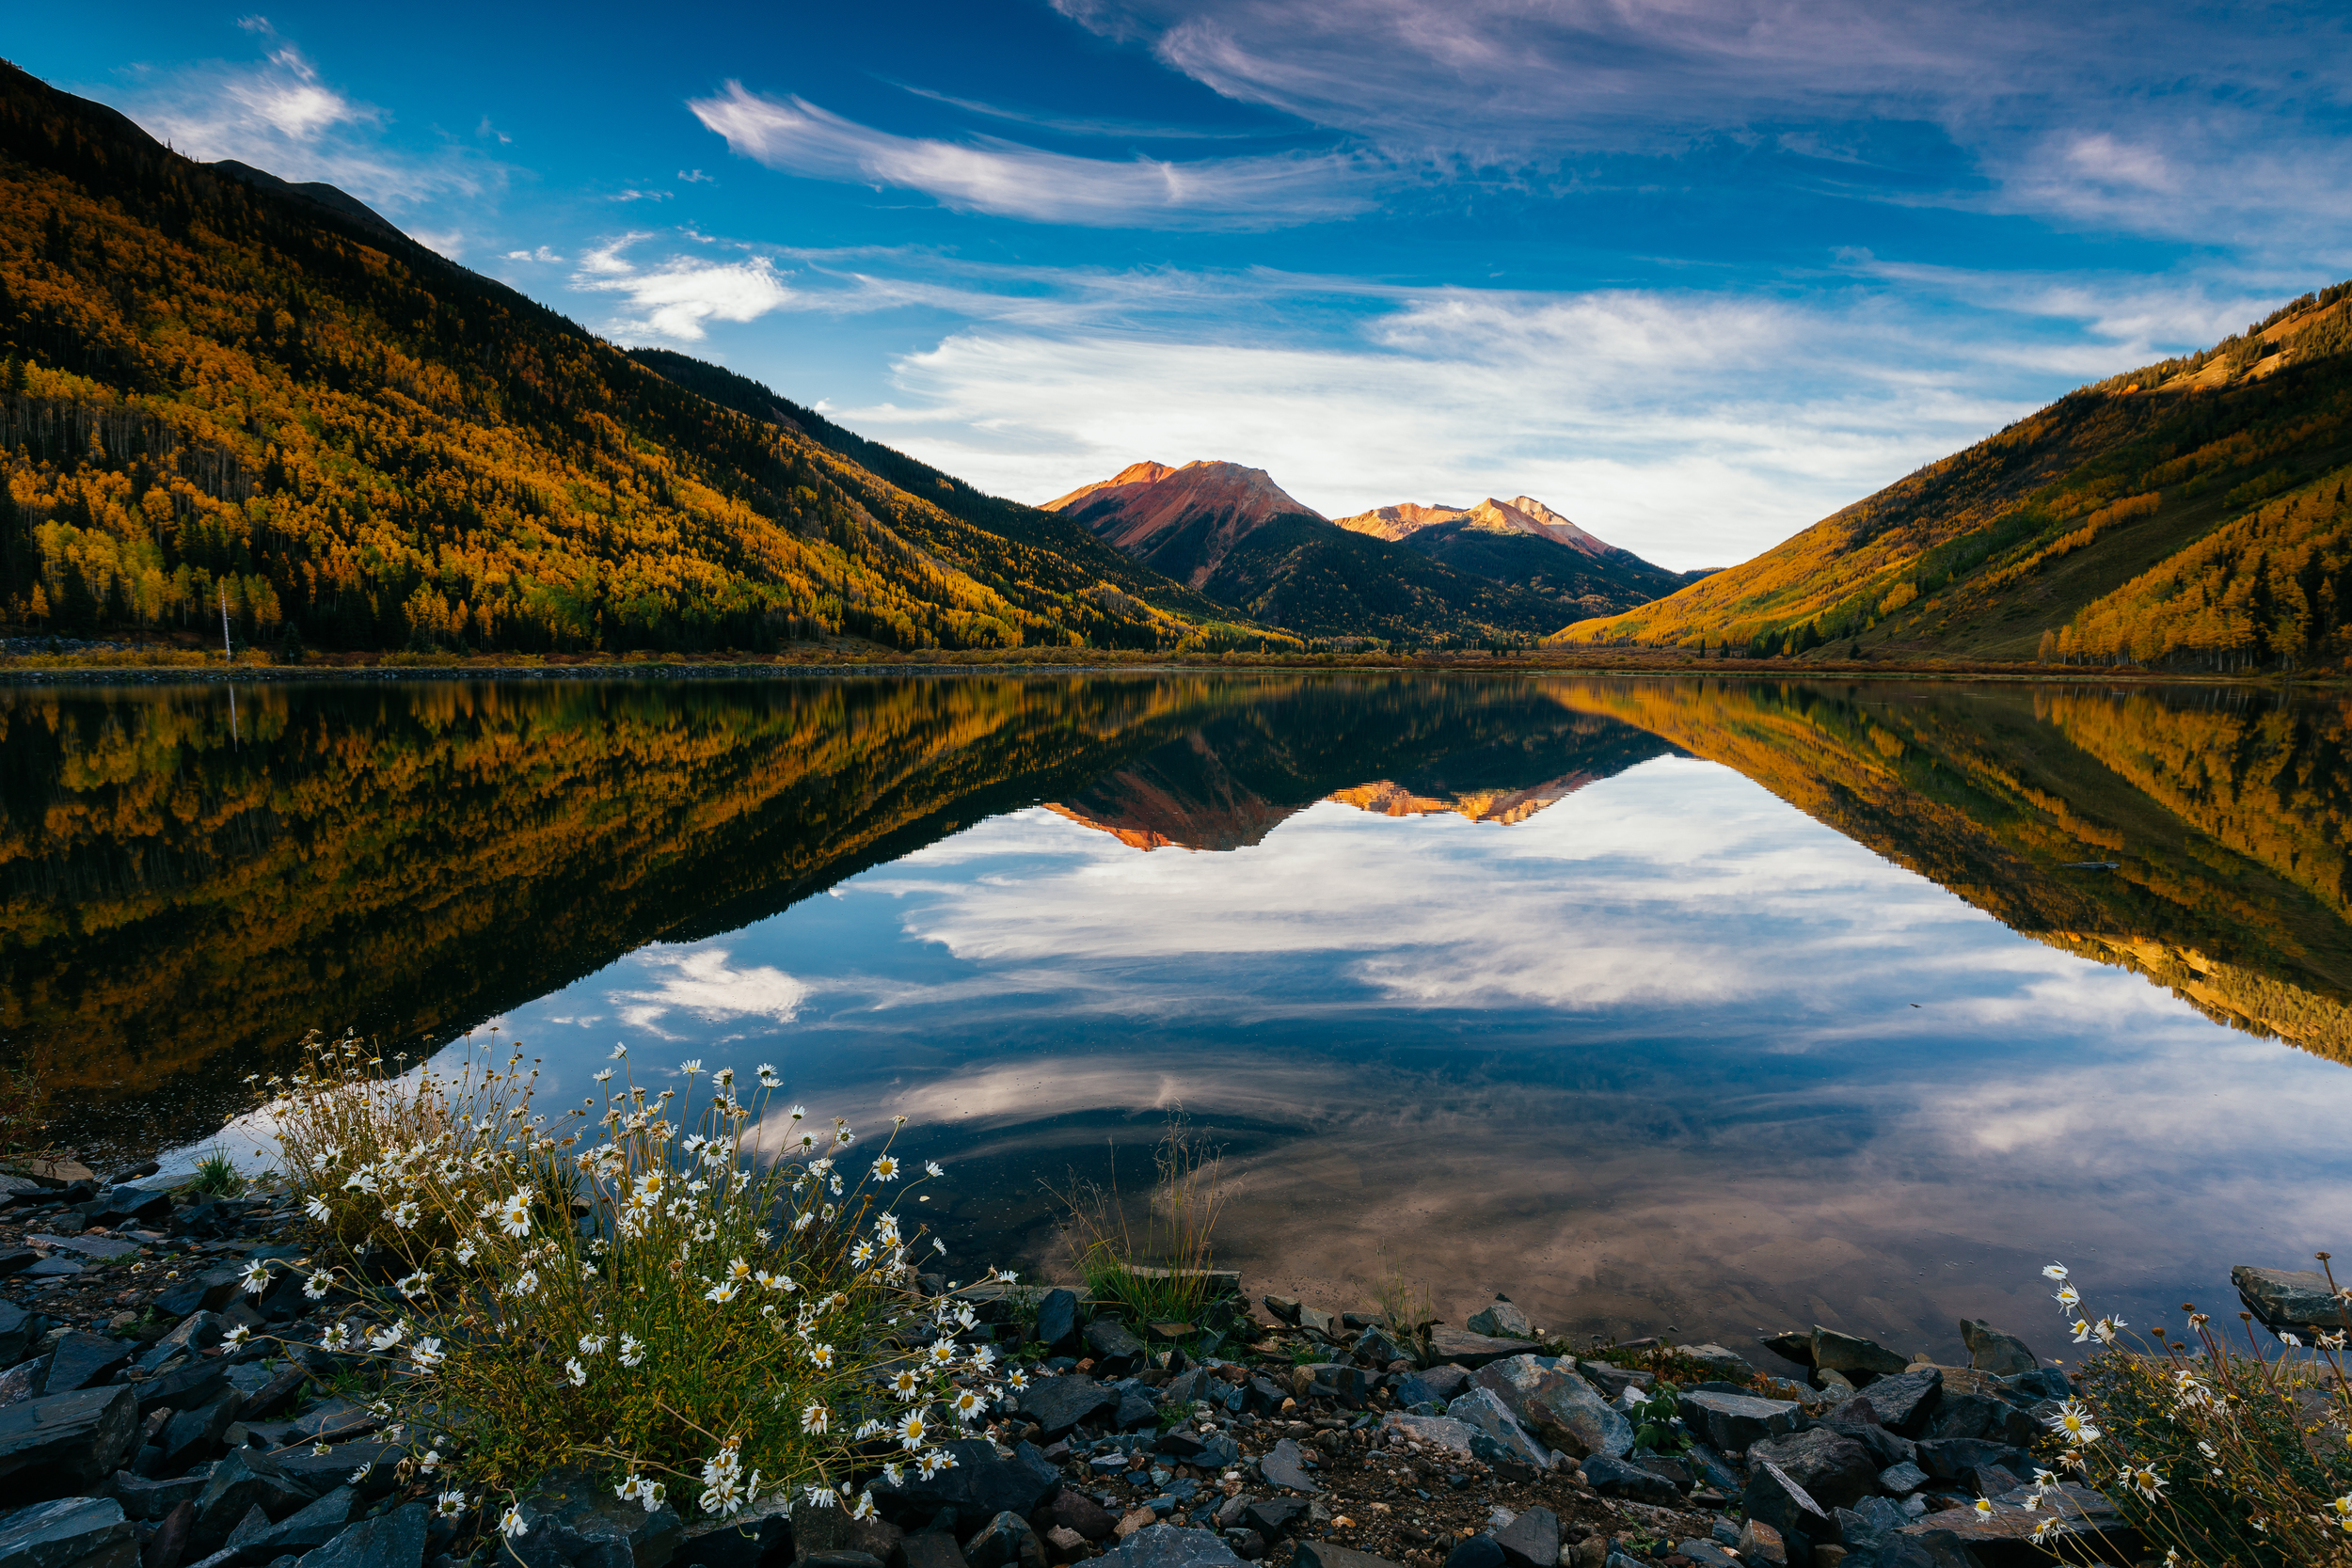 Just off of U.S. Highway 550 going over Red Mountain Pass is a small but beautiful alpine lake called Crystal Lake. The glass-like reflections of the lake provide so many angles and just a flat out gorgeous view of the San Juan mountains! There were a few other photographers around on this morning, but far less than I was expecting for such a stunning mountain scene.